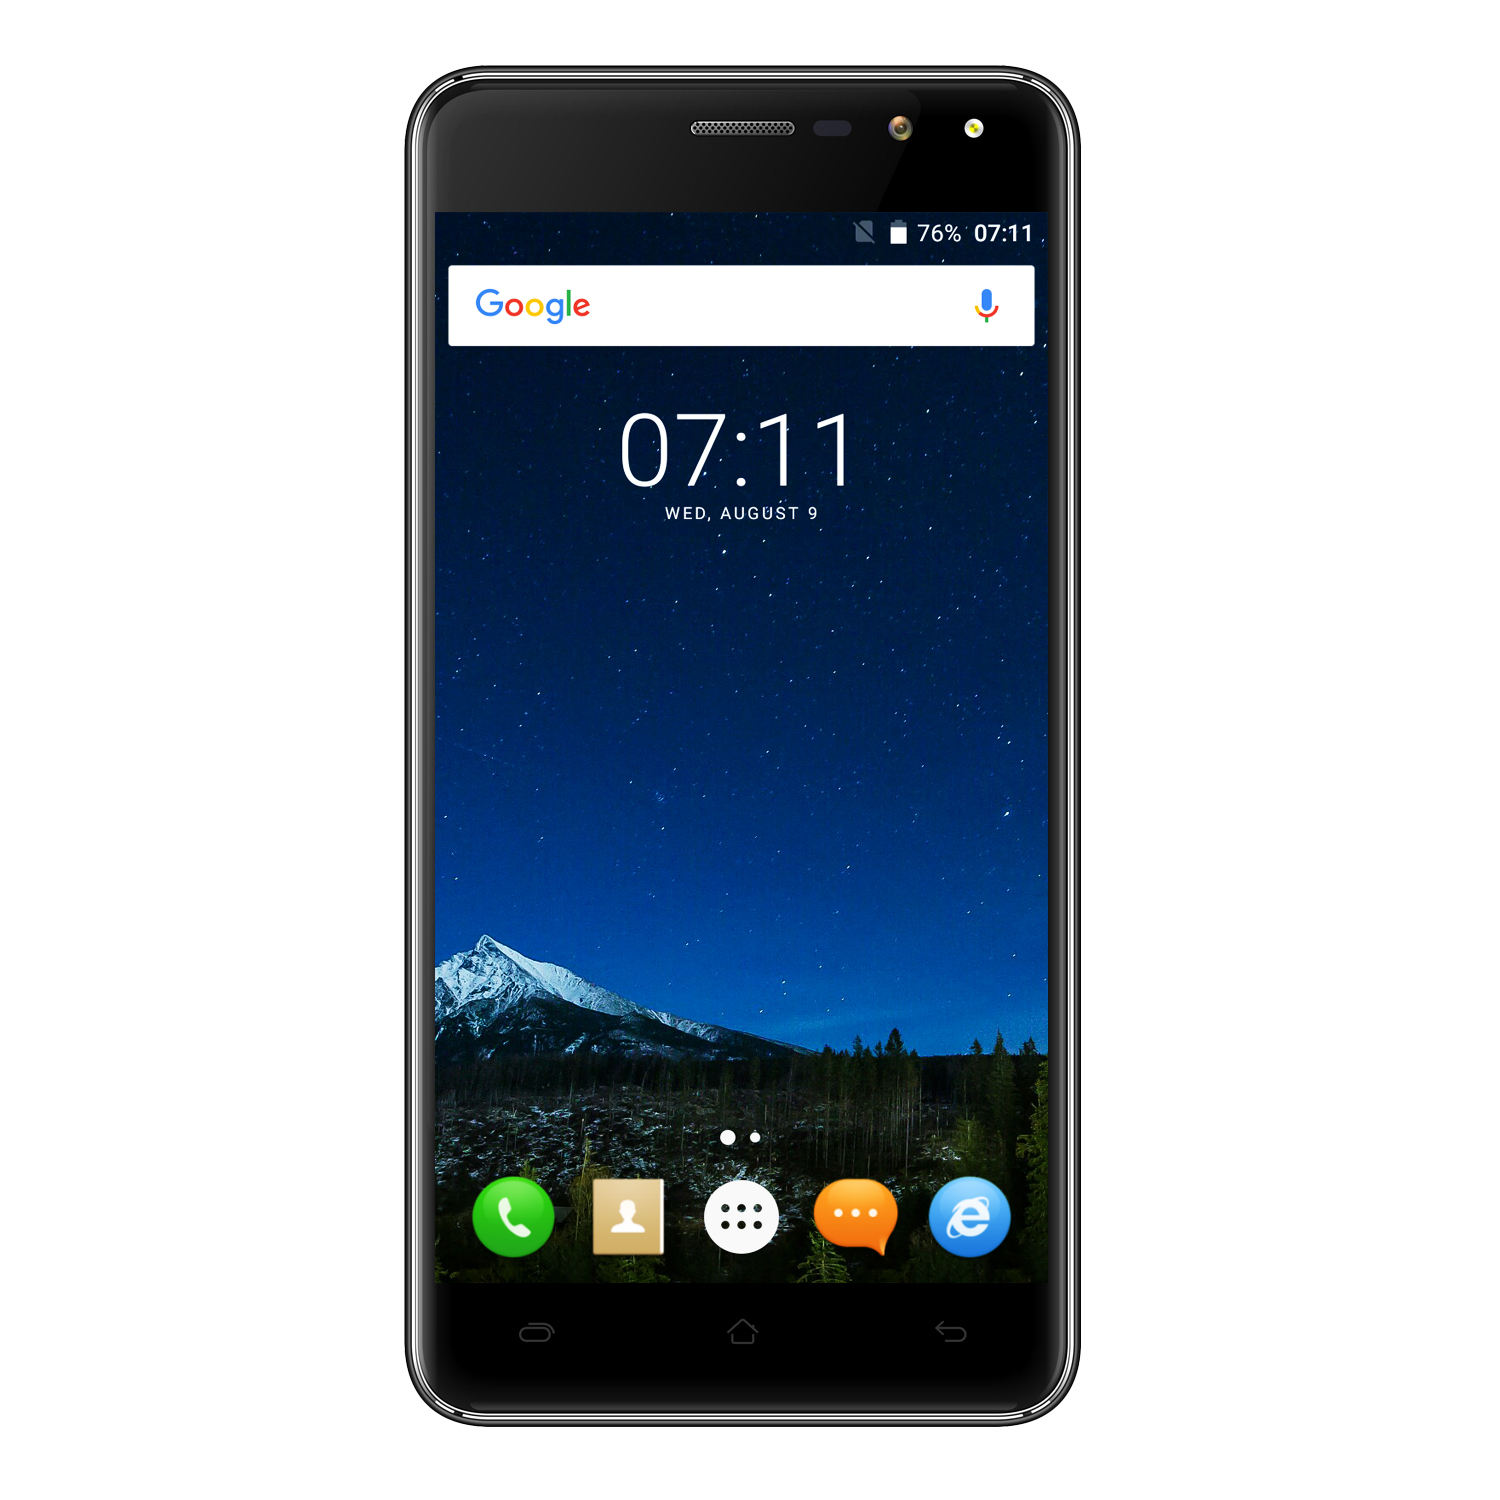 VKworld Cagabi One Mobile Phone 5.0 zoll HD MTK6580A <span class=keywords><strong>Quad</strong></span> Core Android 6.0 1GB RAM 8GB ROM 5MP Cam Dual Flash GPS Smartphone